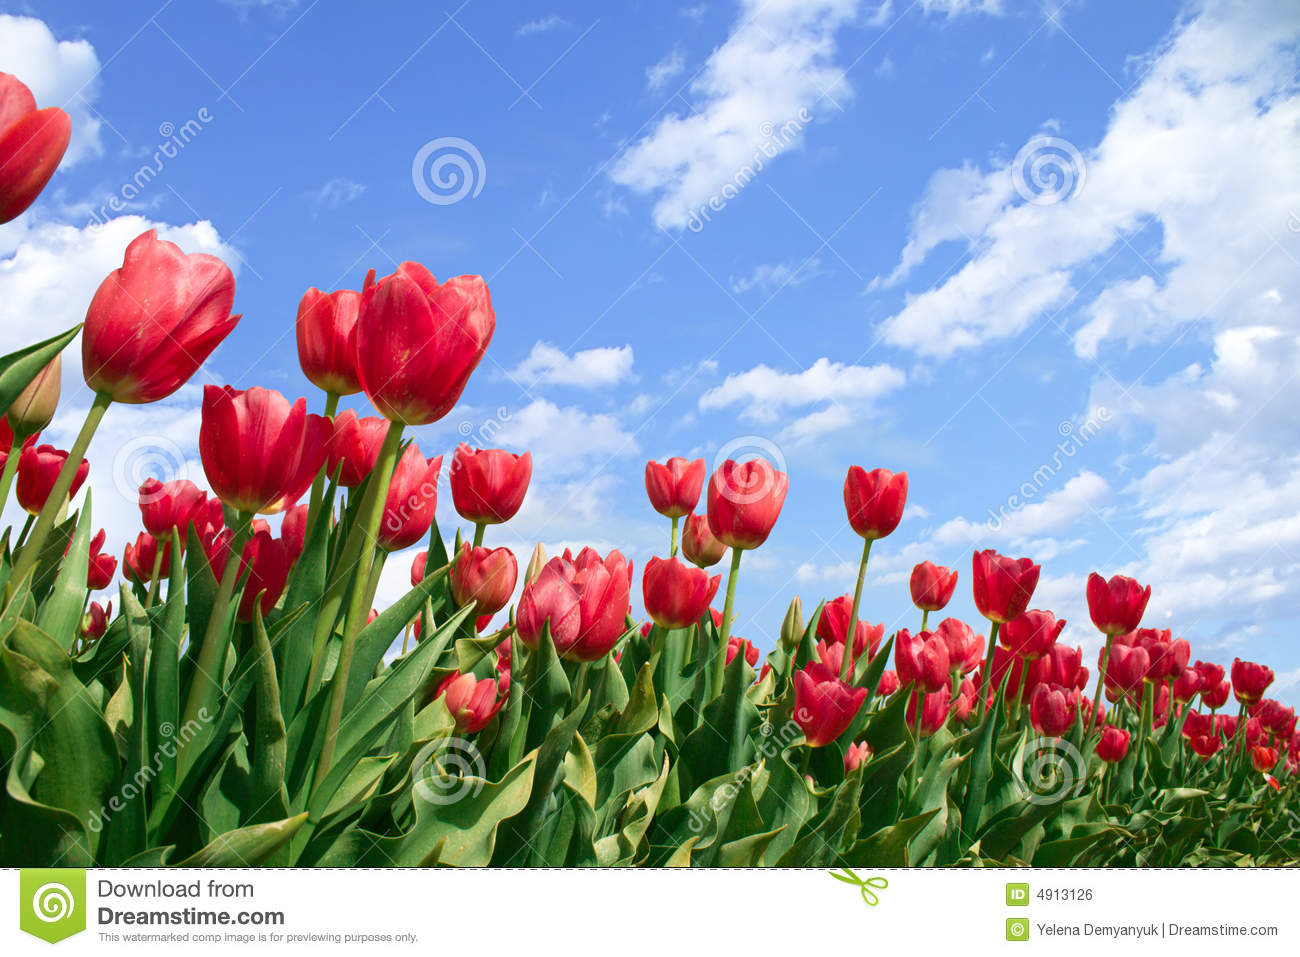 Spring Flowers Tulips In Blue Sky Royalty Free Stock Image - Image ...